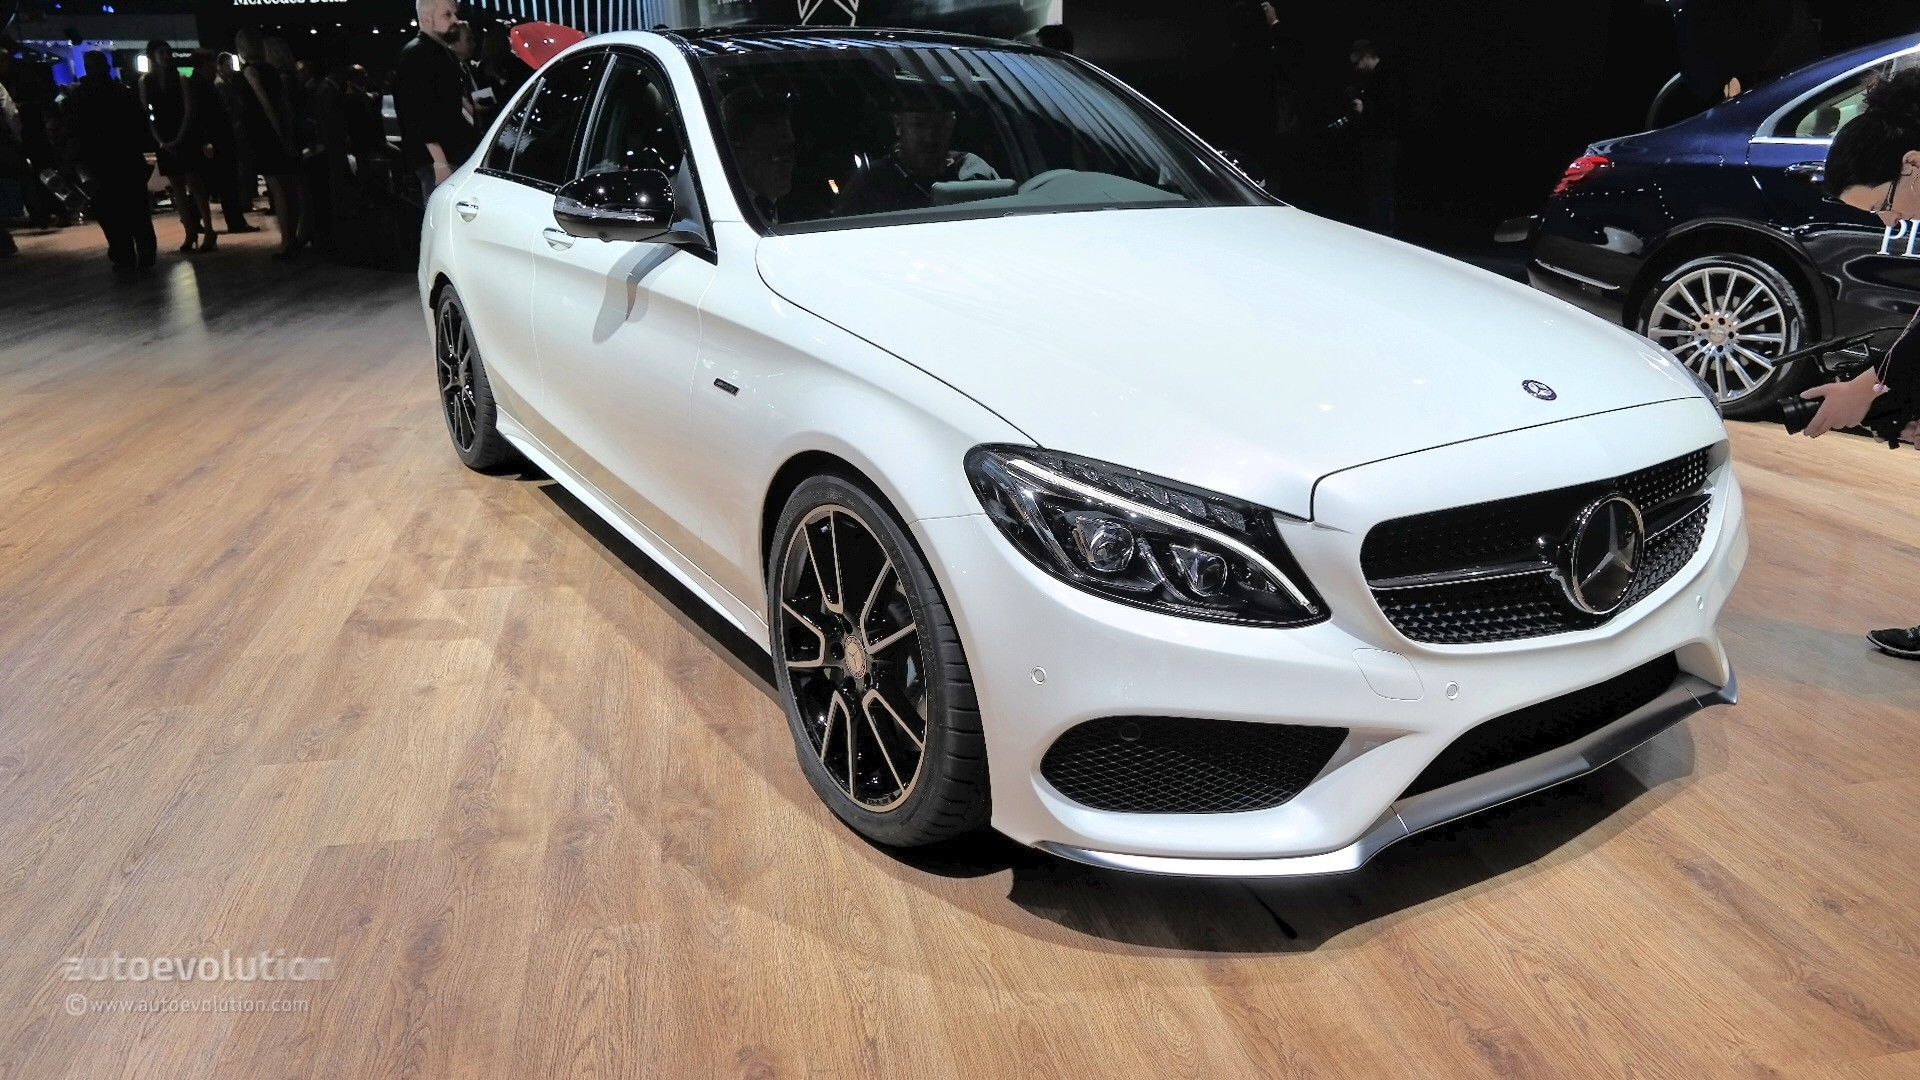 https://s1.cdn.autoevolution.com/images/news/gallery/mercedes-benz-c450-amg-sport-looks-ordinary-at-2015-detroit-auto-show-live-photos_11.jpg